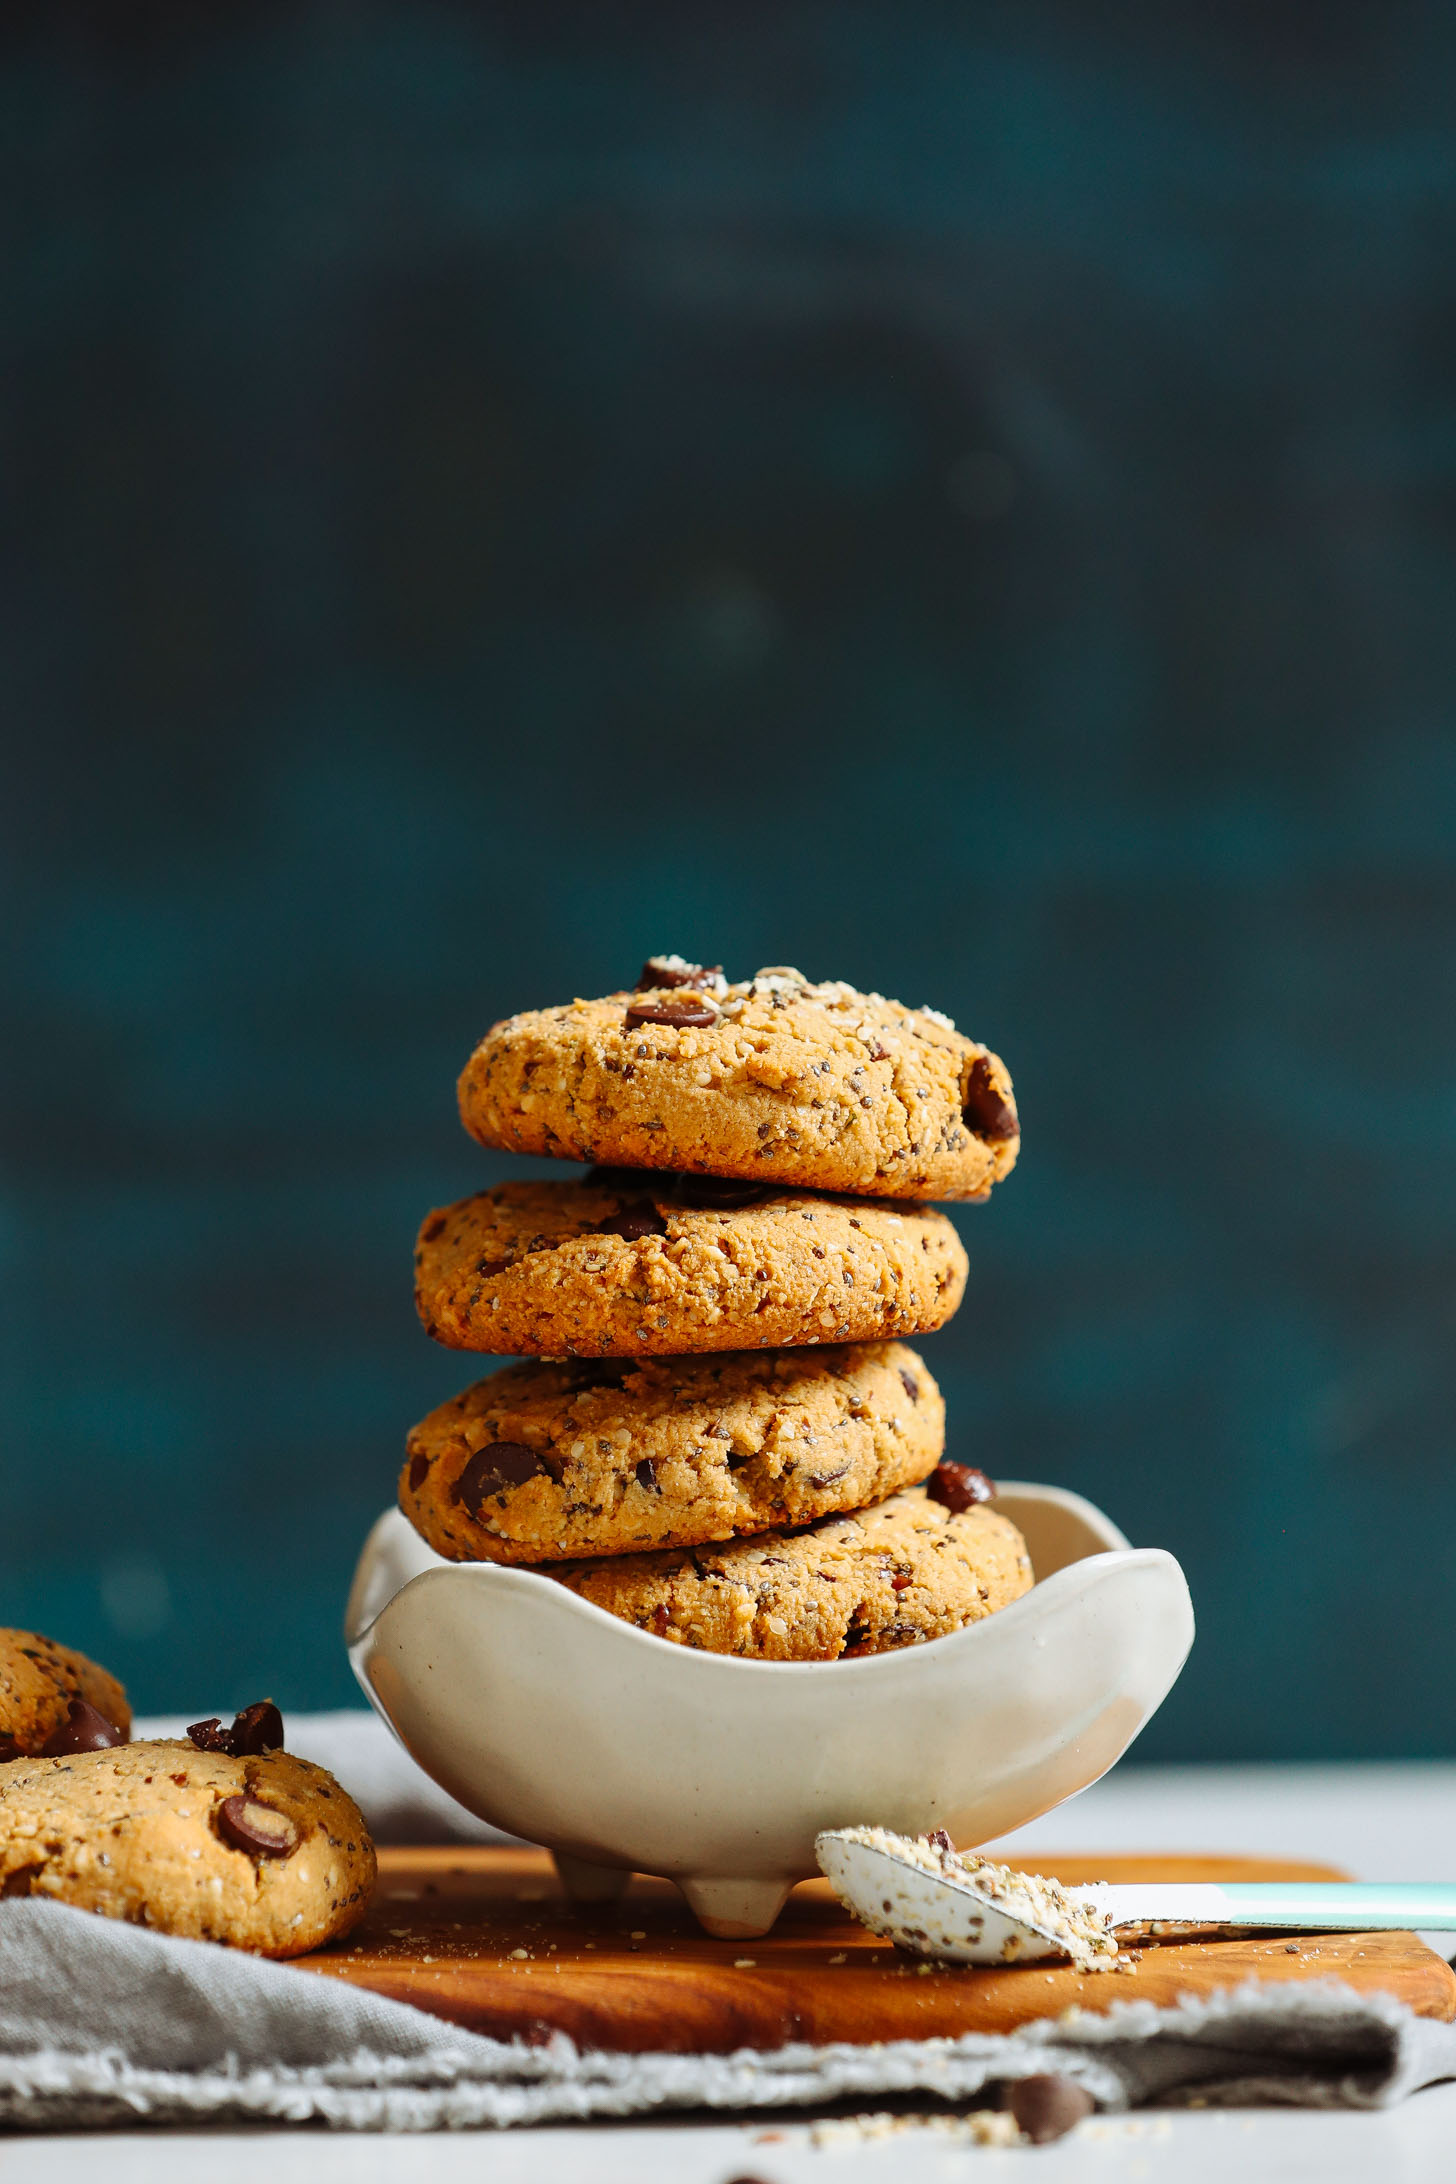 Homemade gluten-free vegan Trail Mix Cookies stacked in a bowl